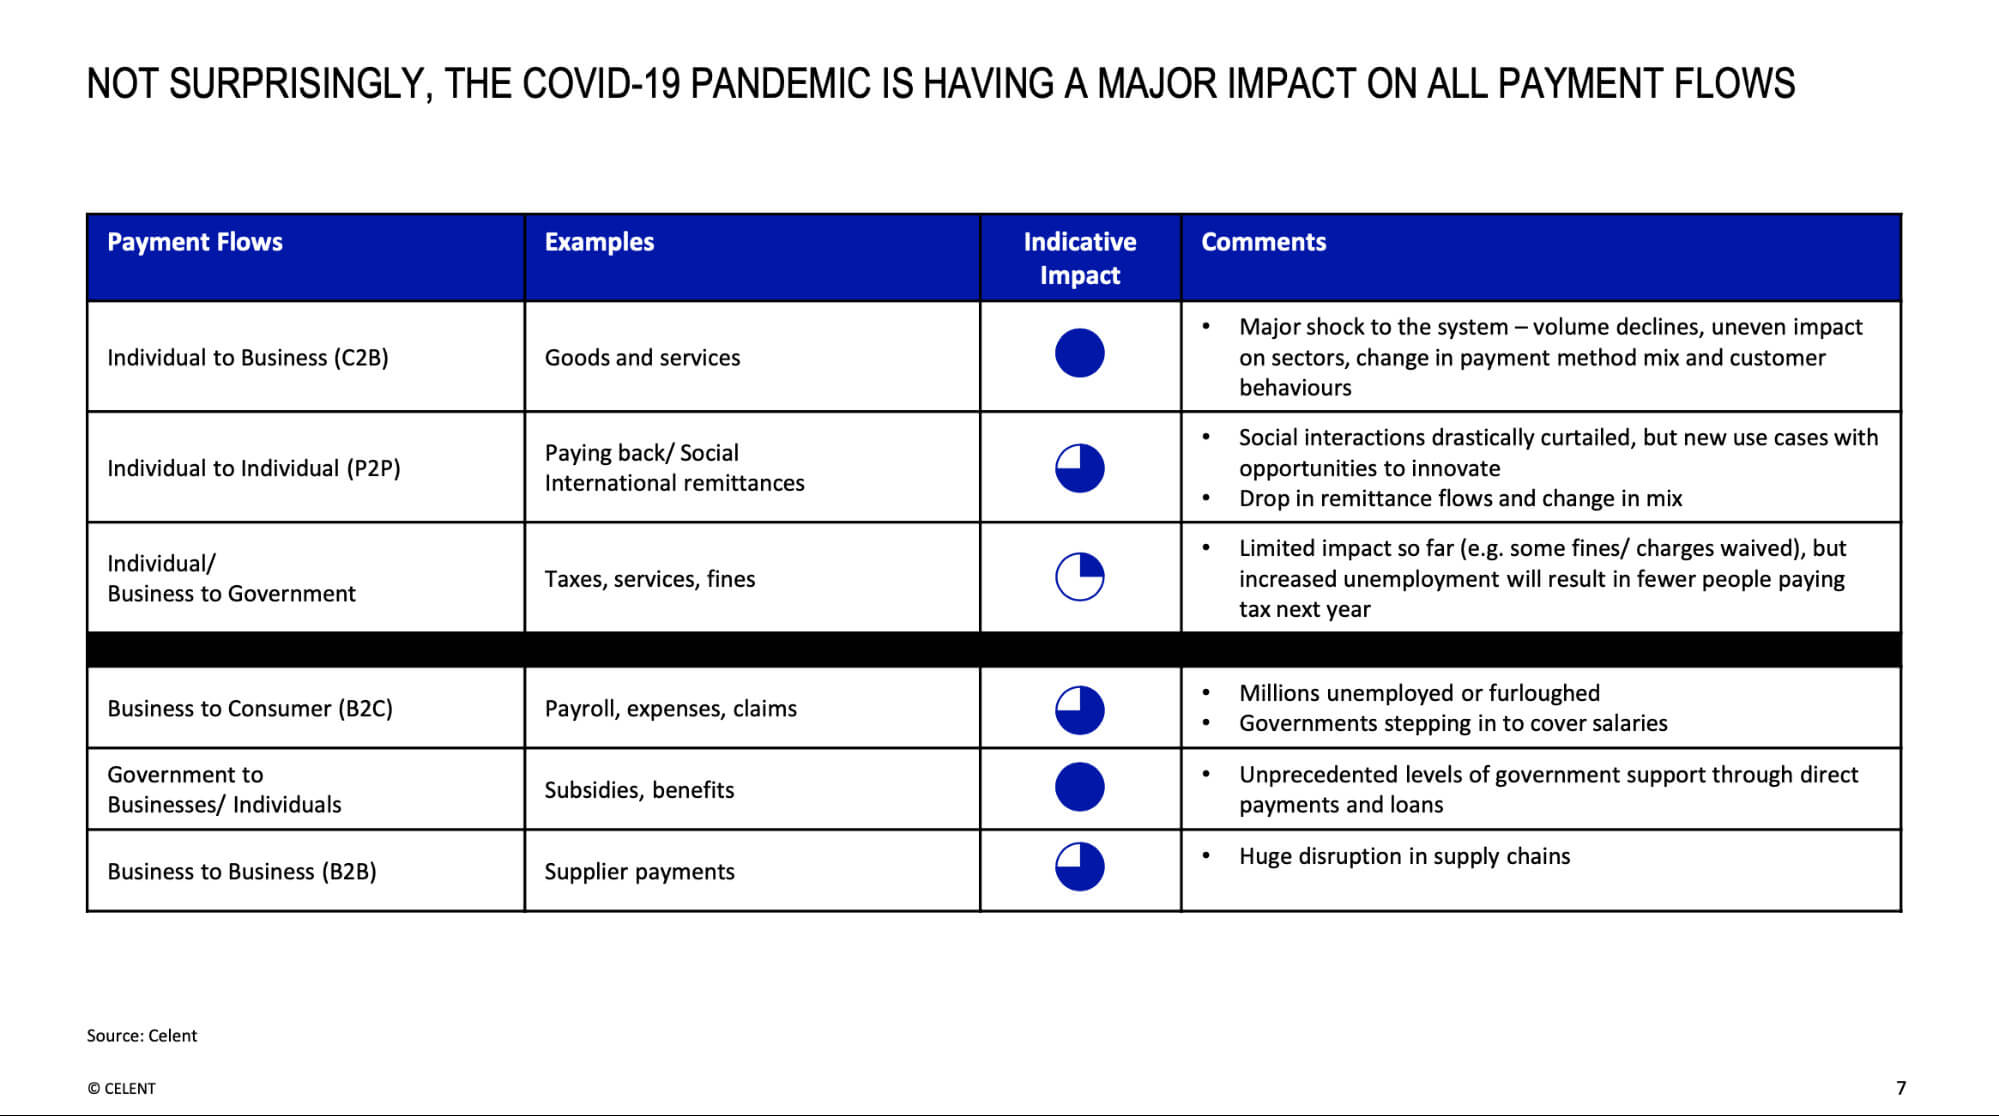 Not surprisingly, the Covid-19 pandemic is having a mahor impact on all payment flows